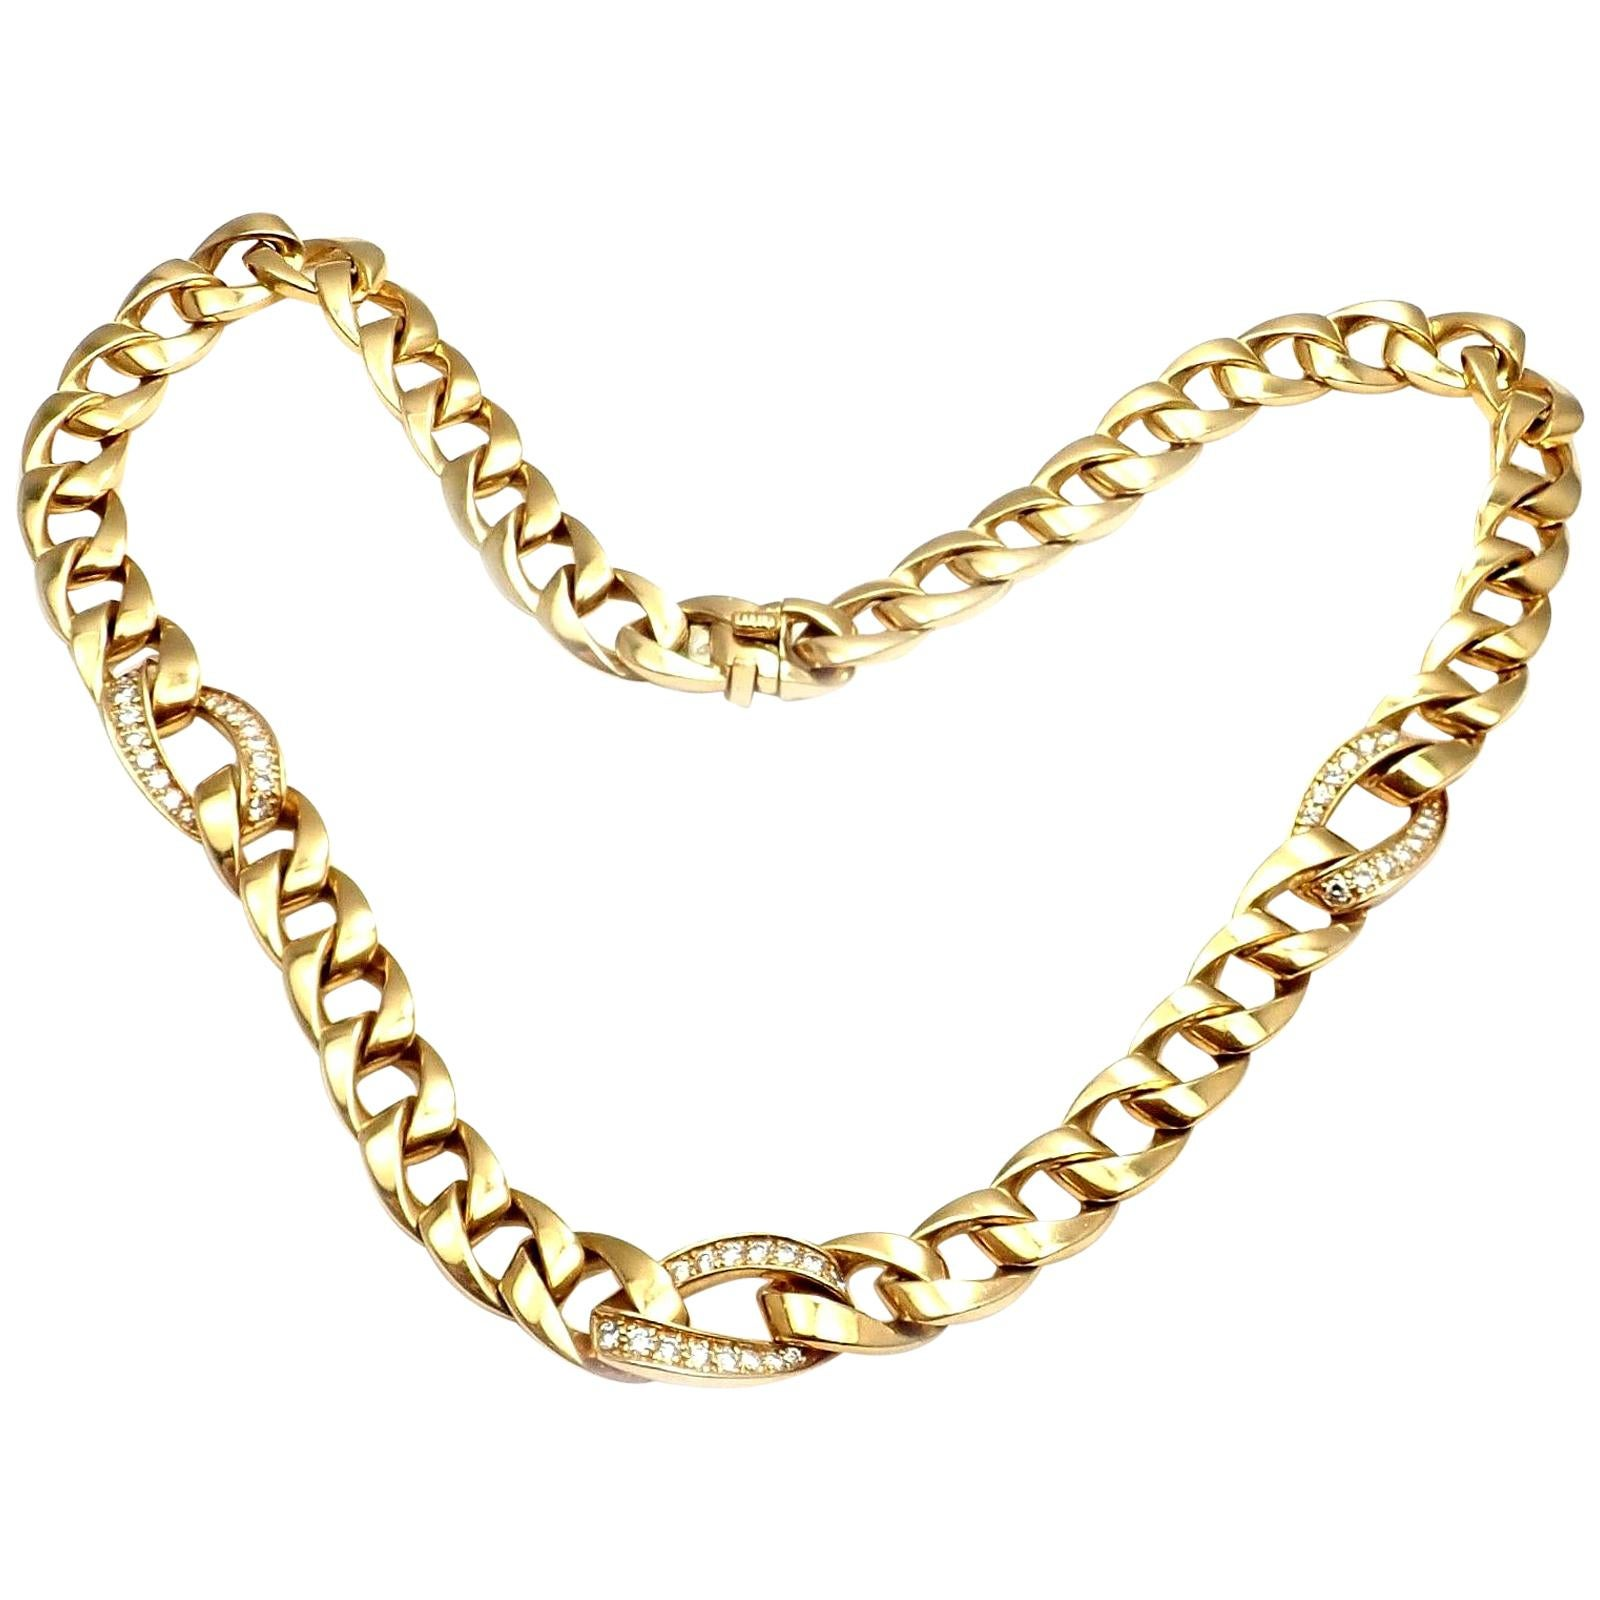 Cartier Diamond Link Yellow Gold Chain Necklace